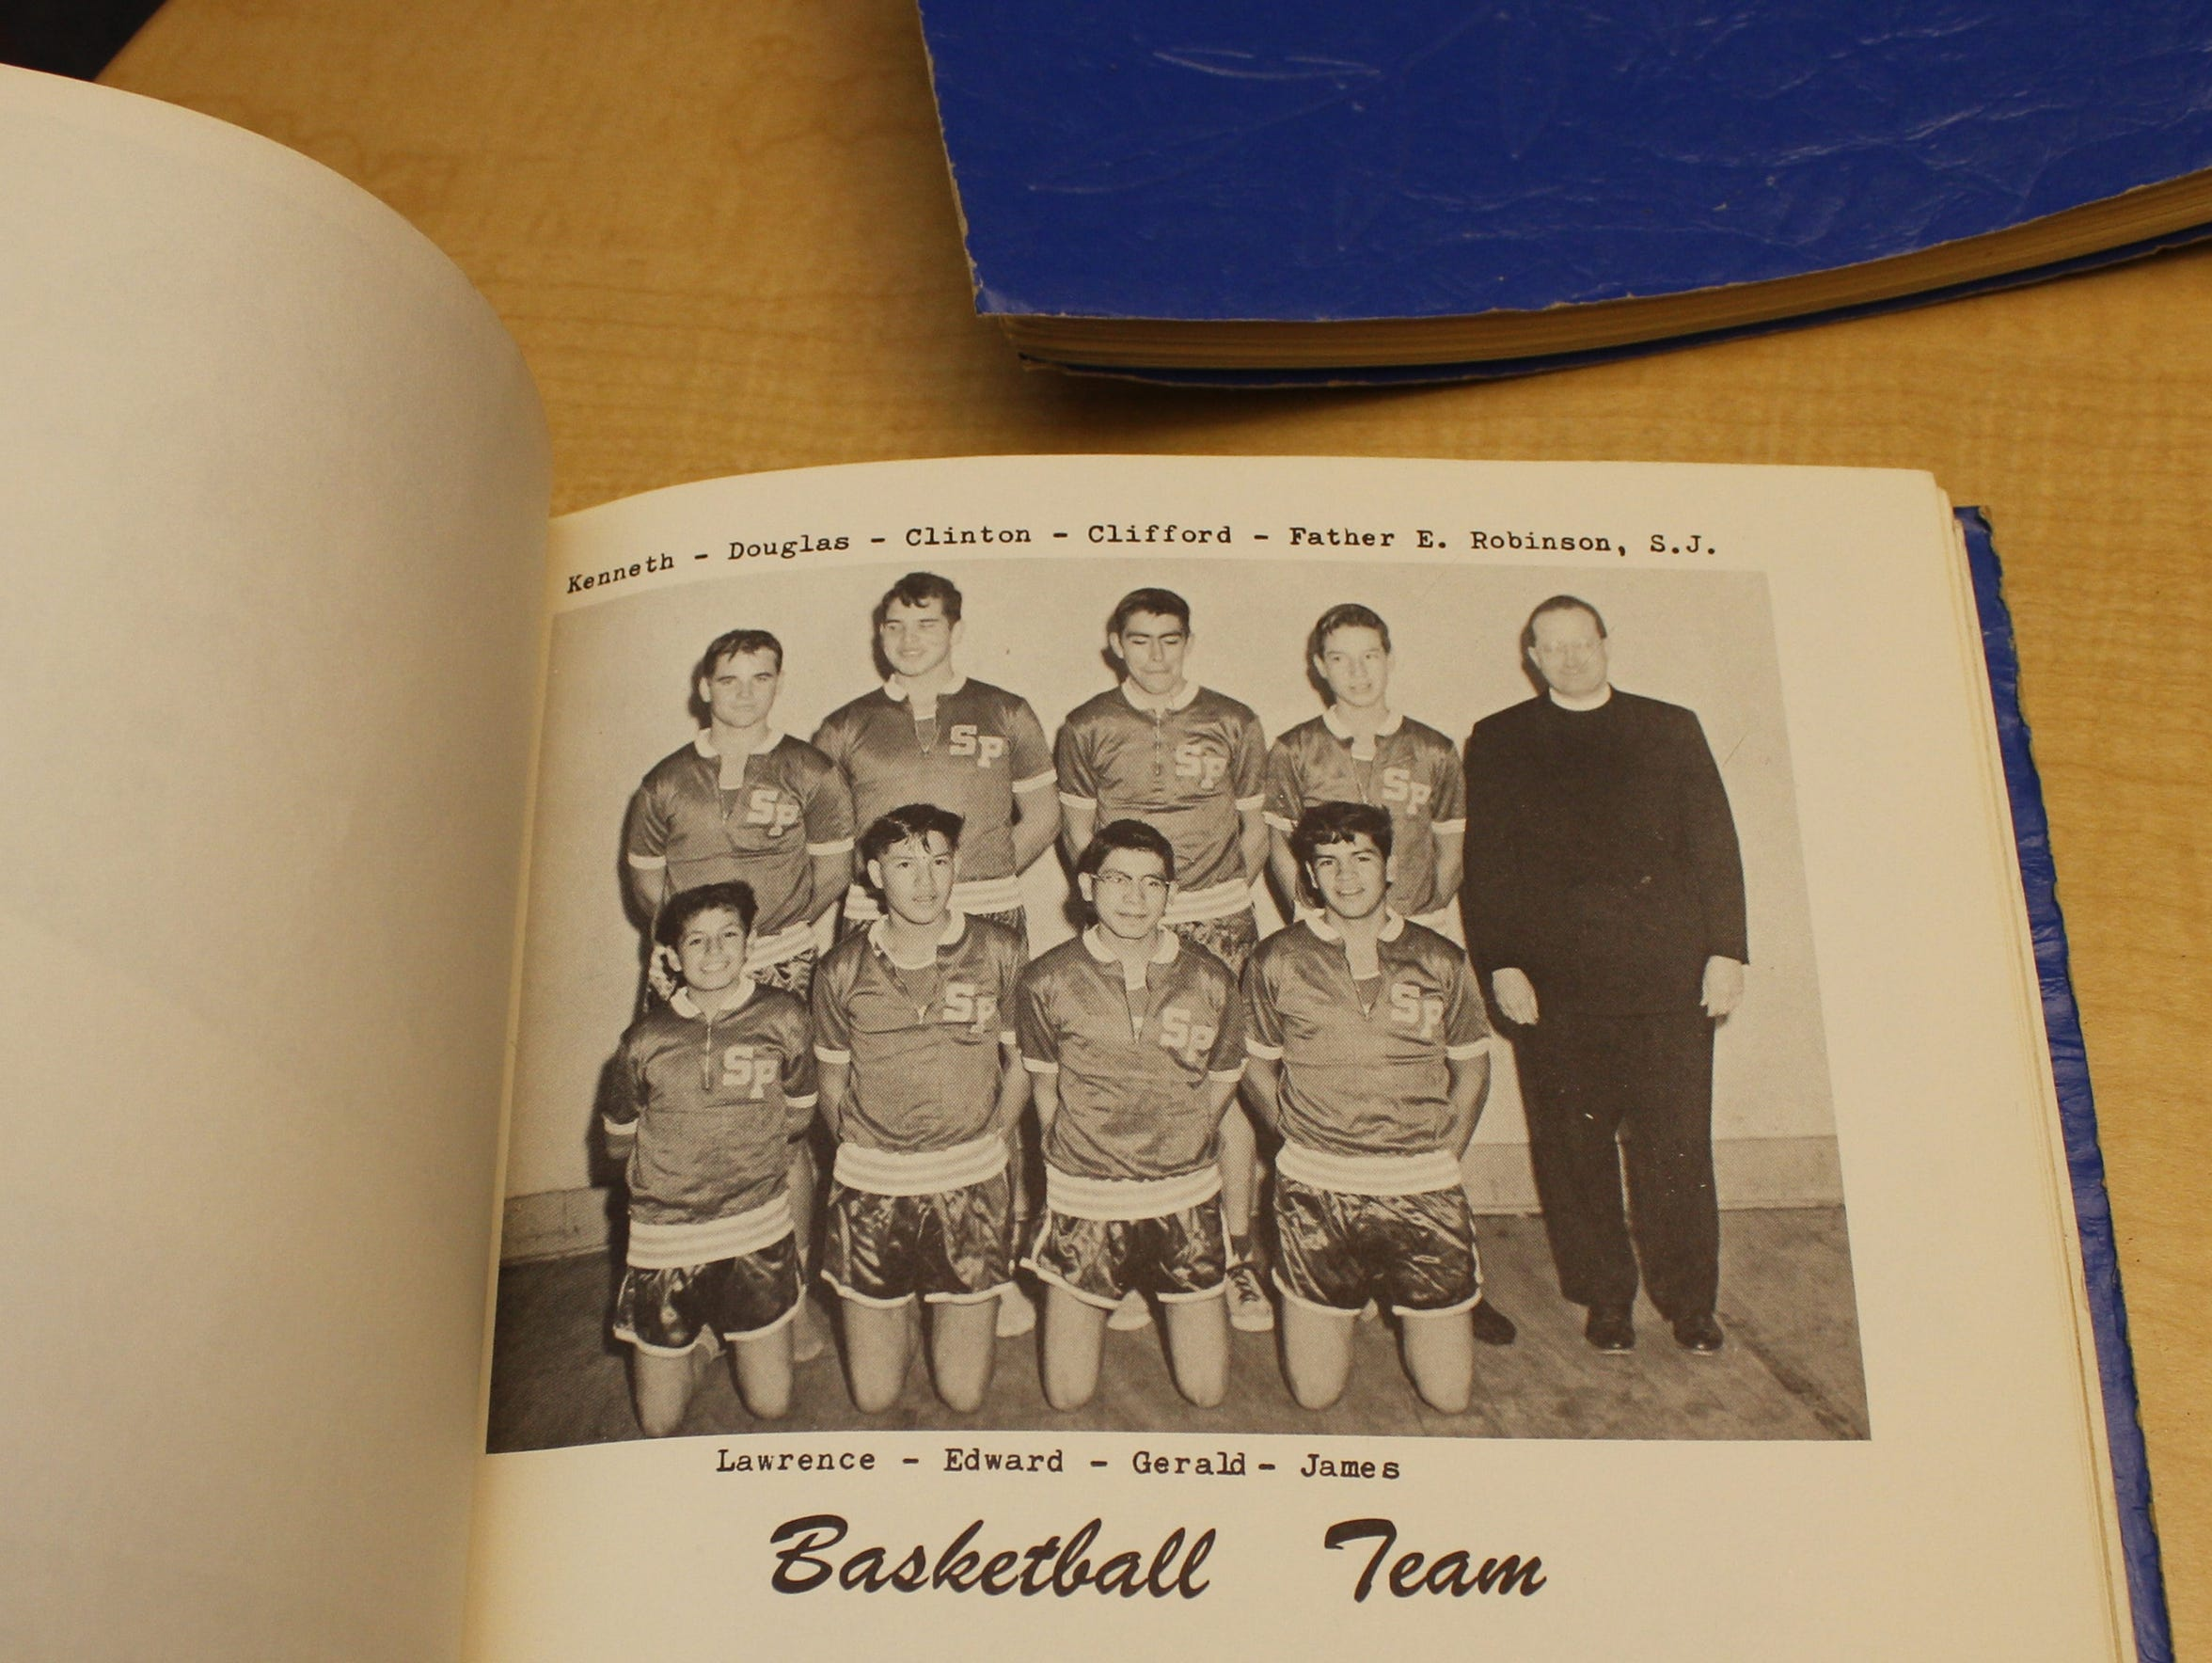 Father Edmund Robinson also served as the basketball